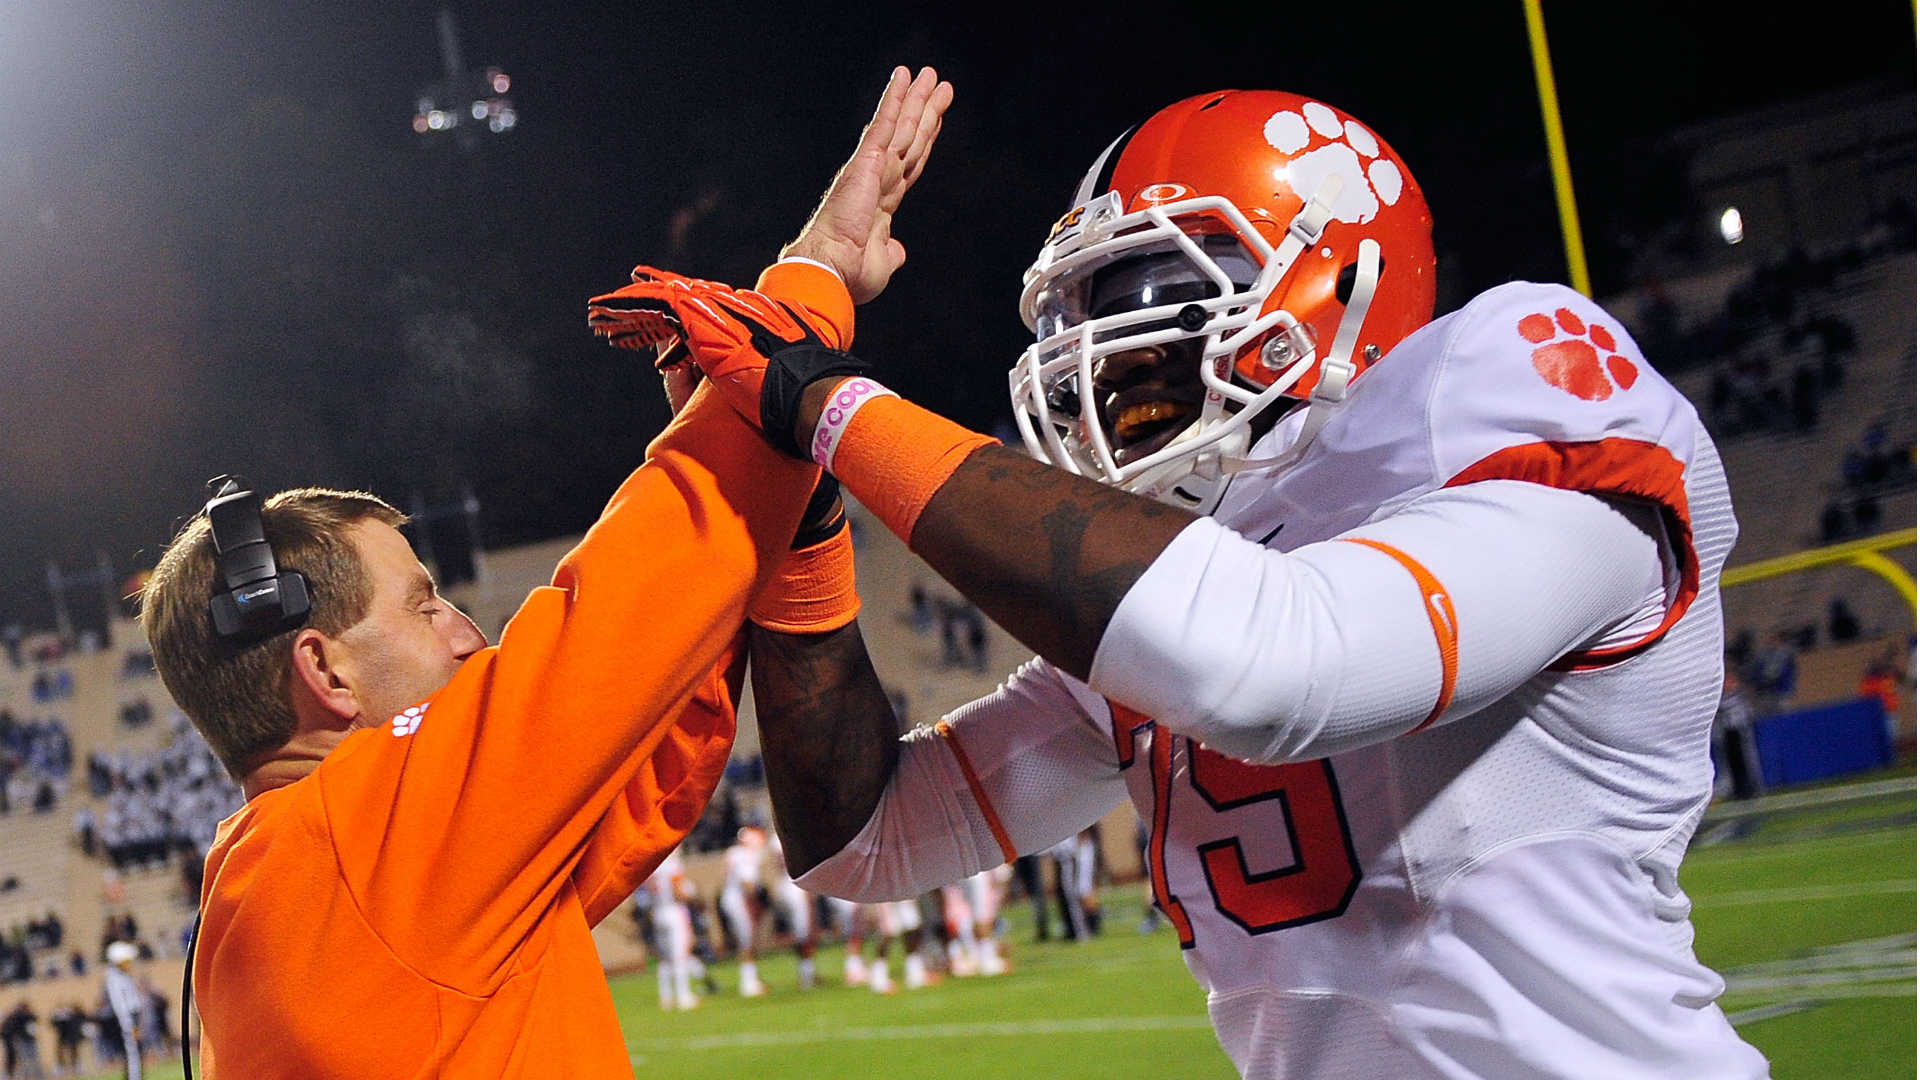 NFL supplemental draft 2015: Isaiah Battle tempts OL-needy teams